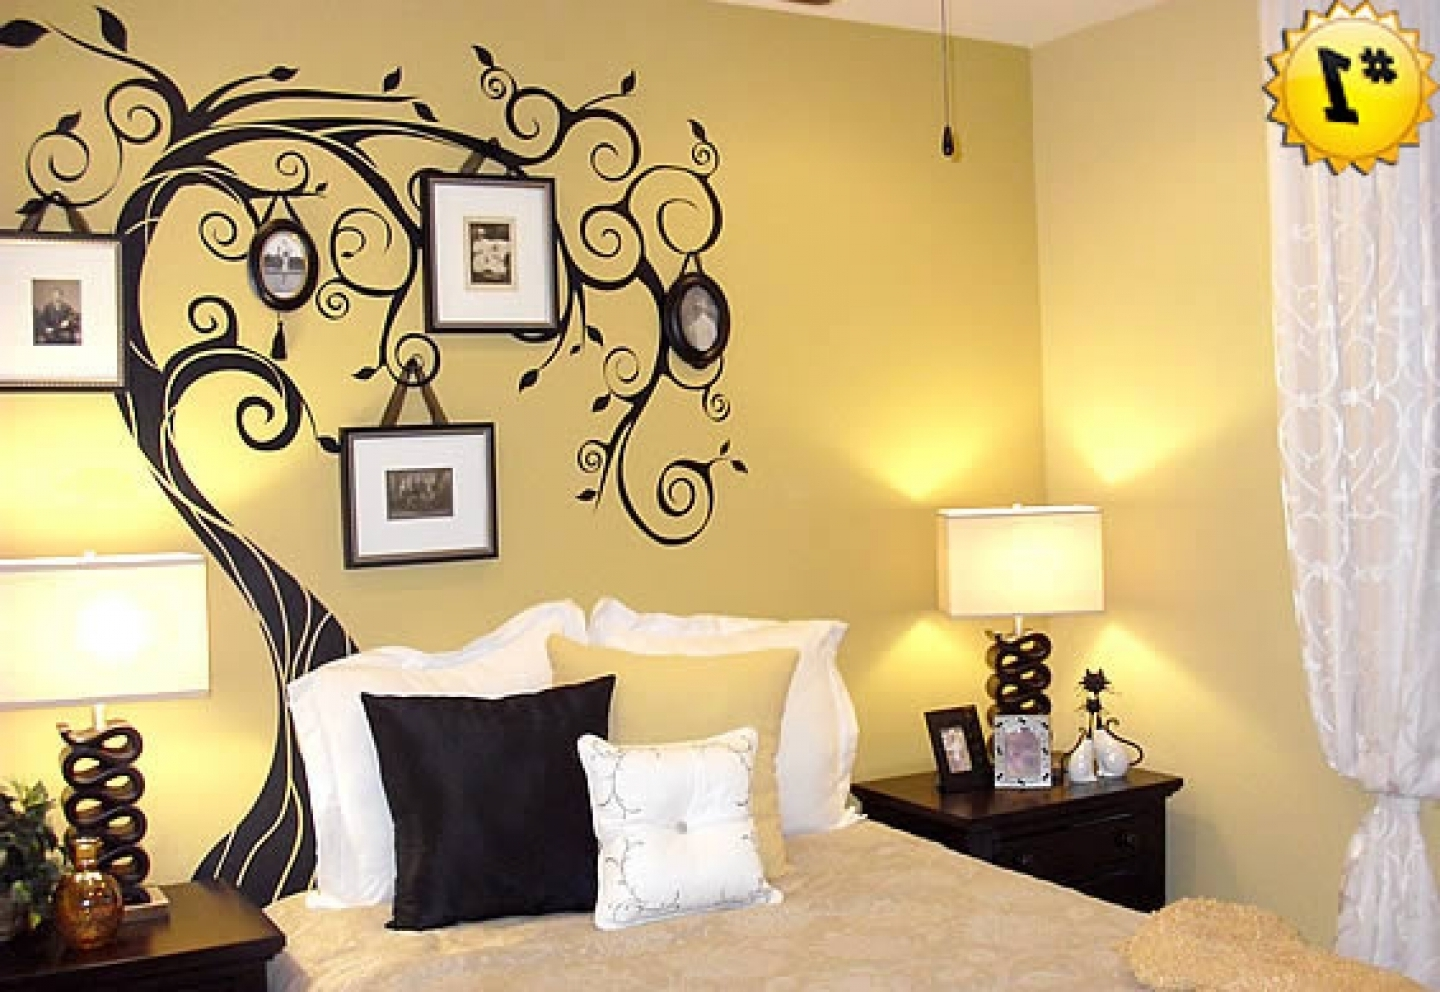 Wall Art For Bedroom In Well Known Wall Art And Decor For Bedroom • Walls Decor (View 7 of 15)